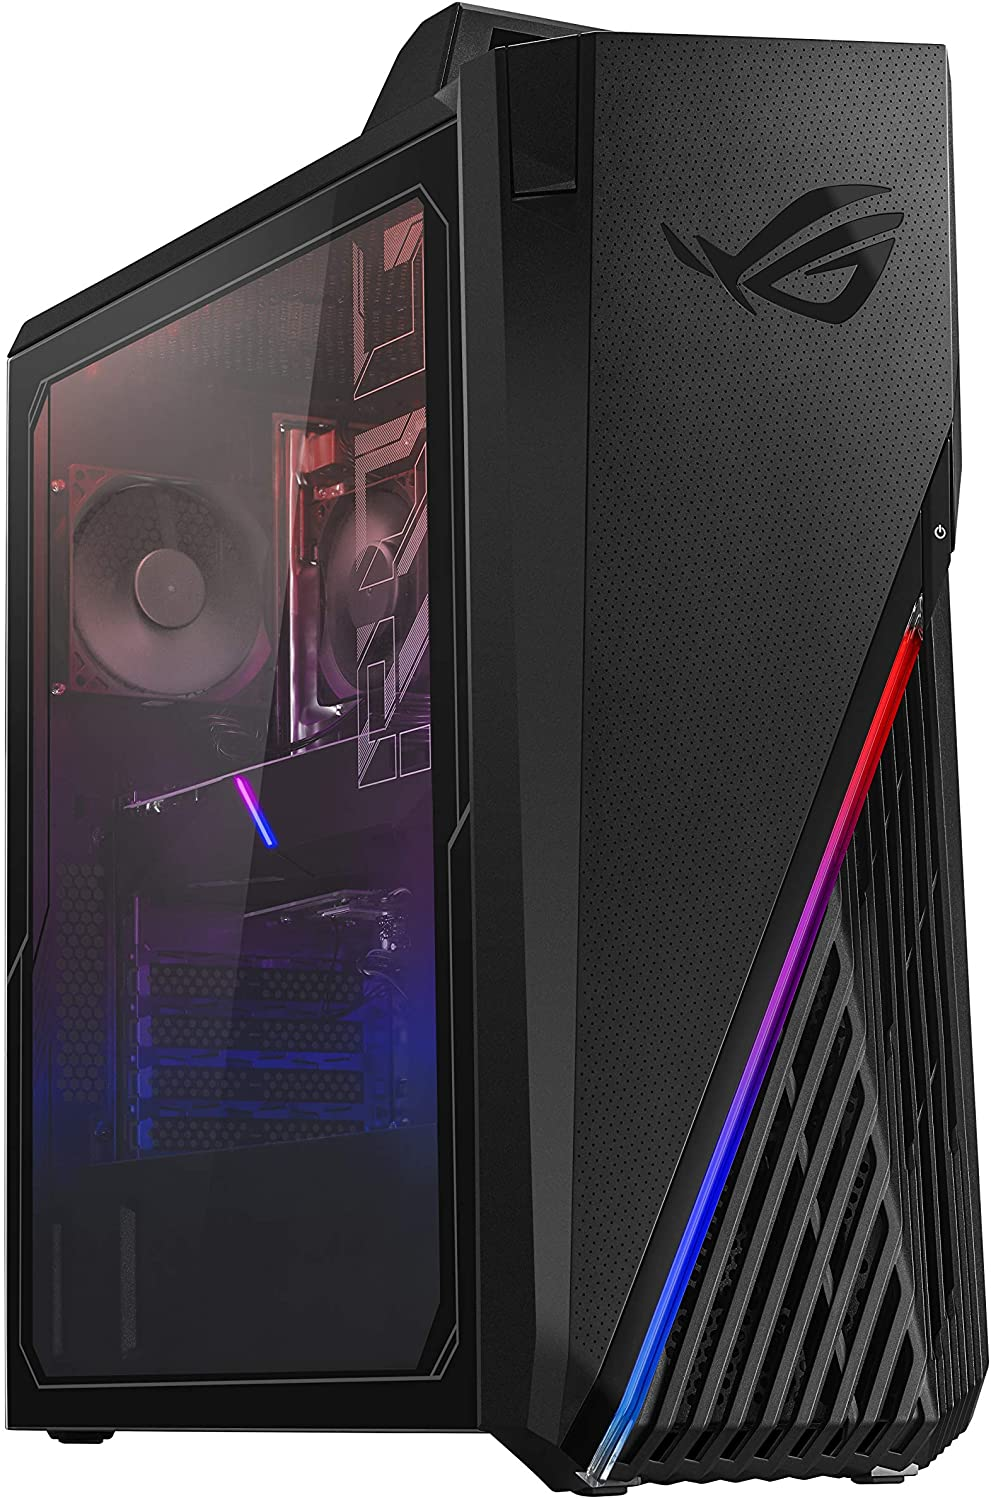 Full-Featured eSports PC